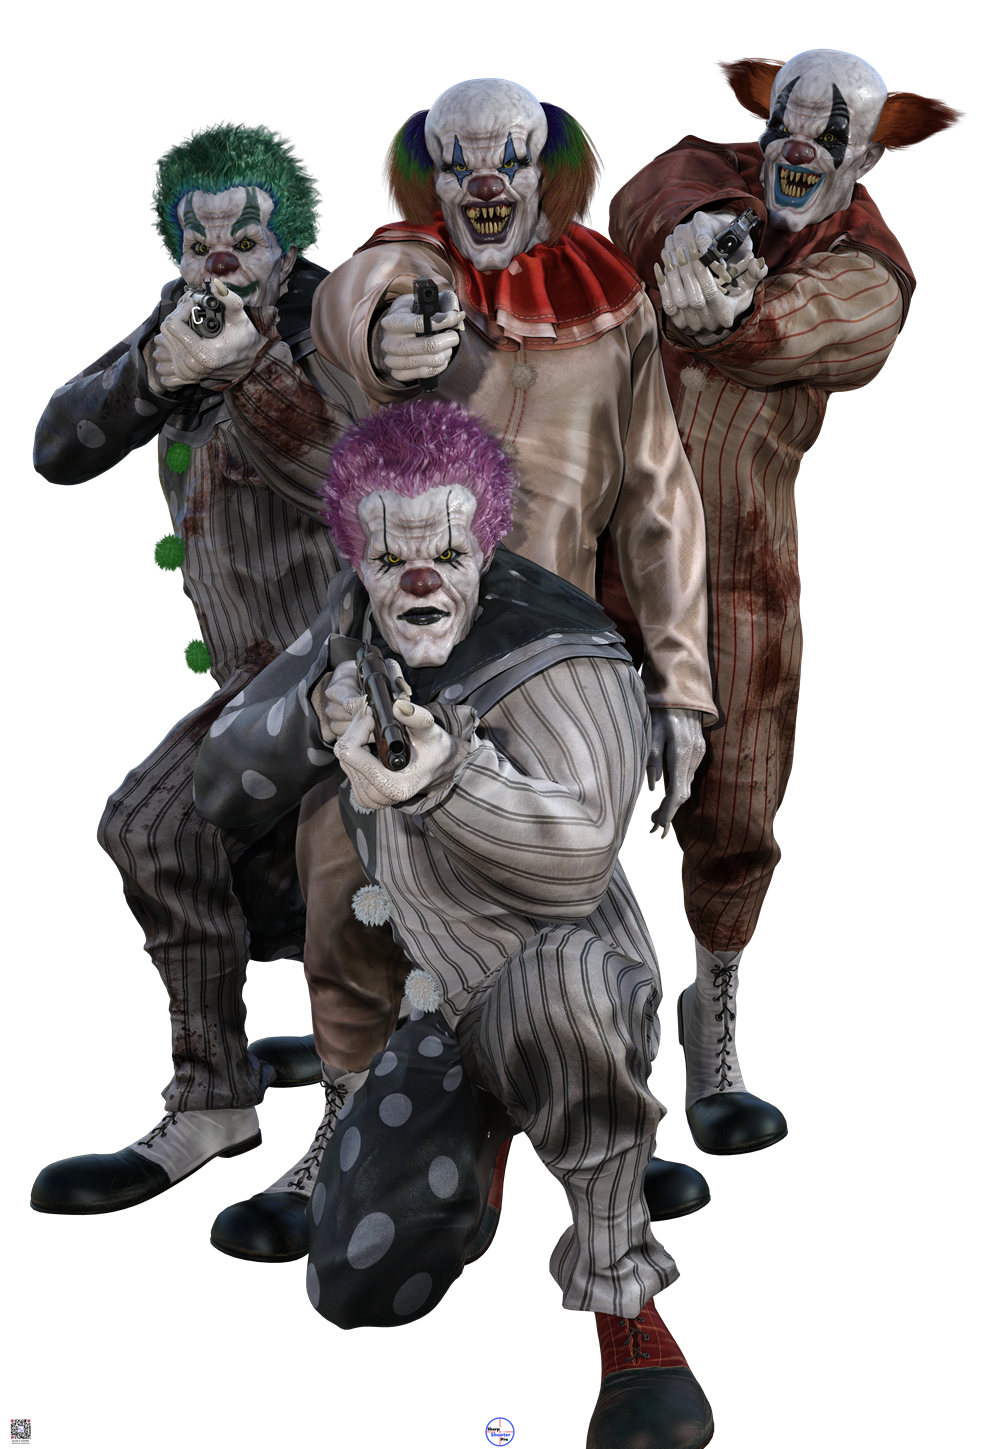 Bunch of Scary Clowns Target Product Image